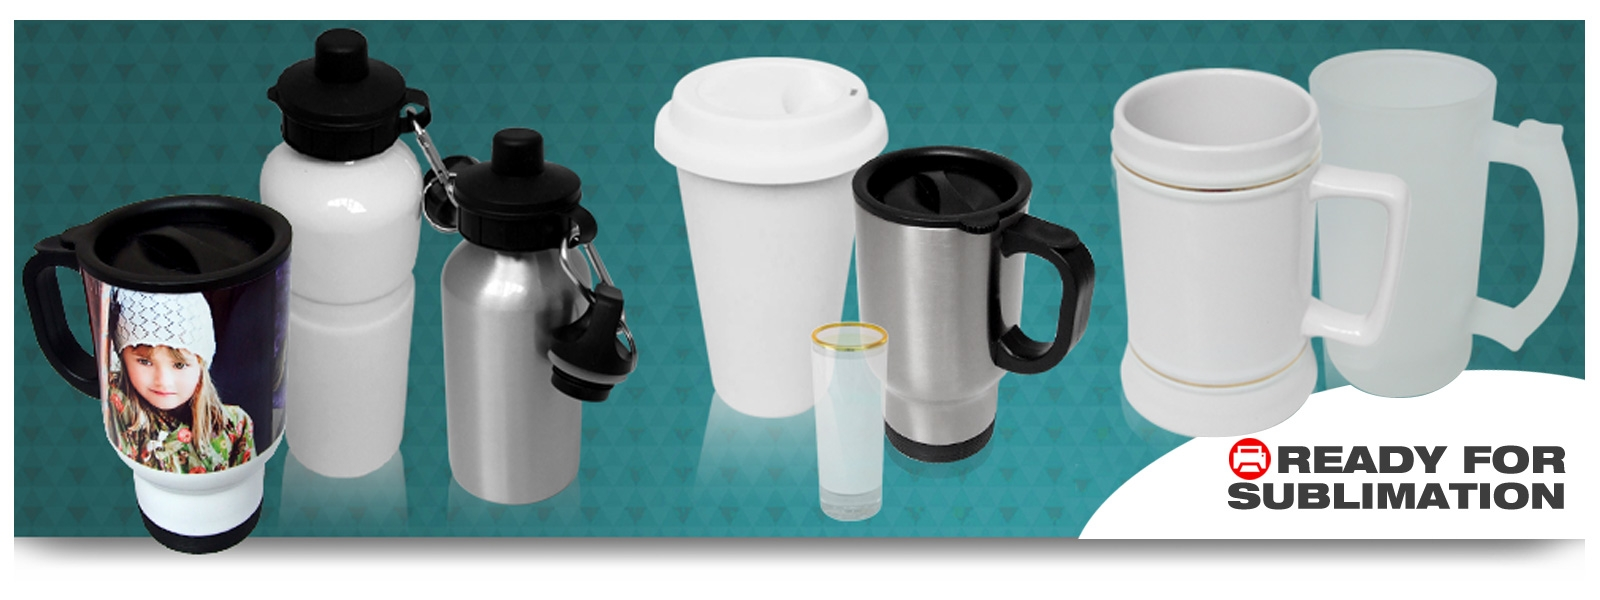 Sublimation Mugs and Drinkware